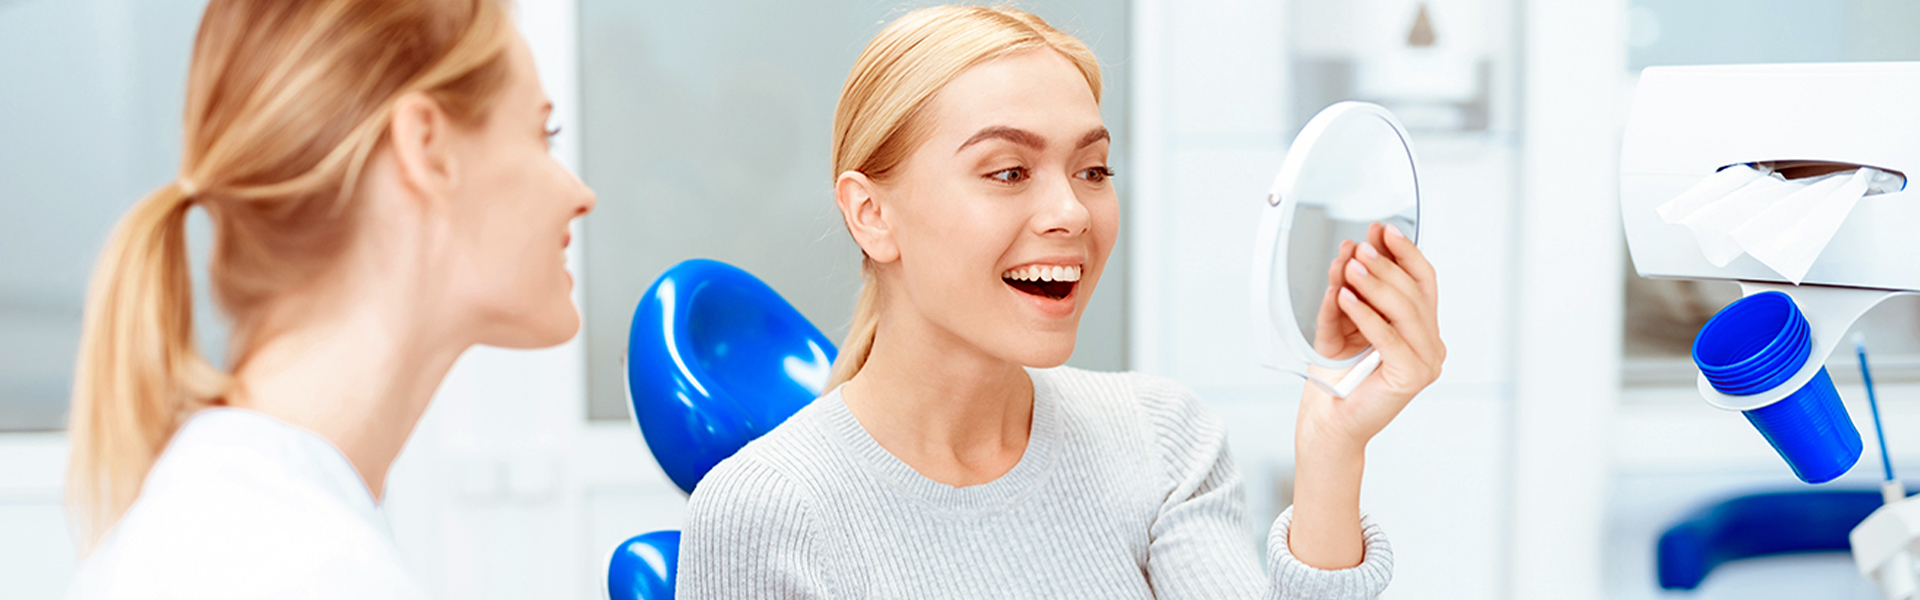 Root Canal Treatment Helpful to Eliminate Bacteria from an Infected Tooth